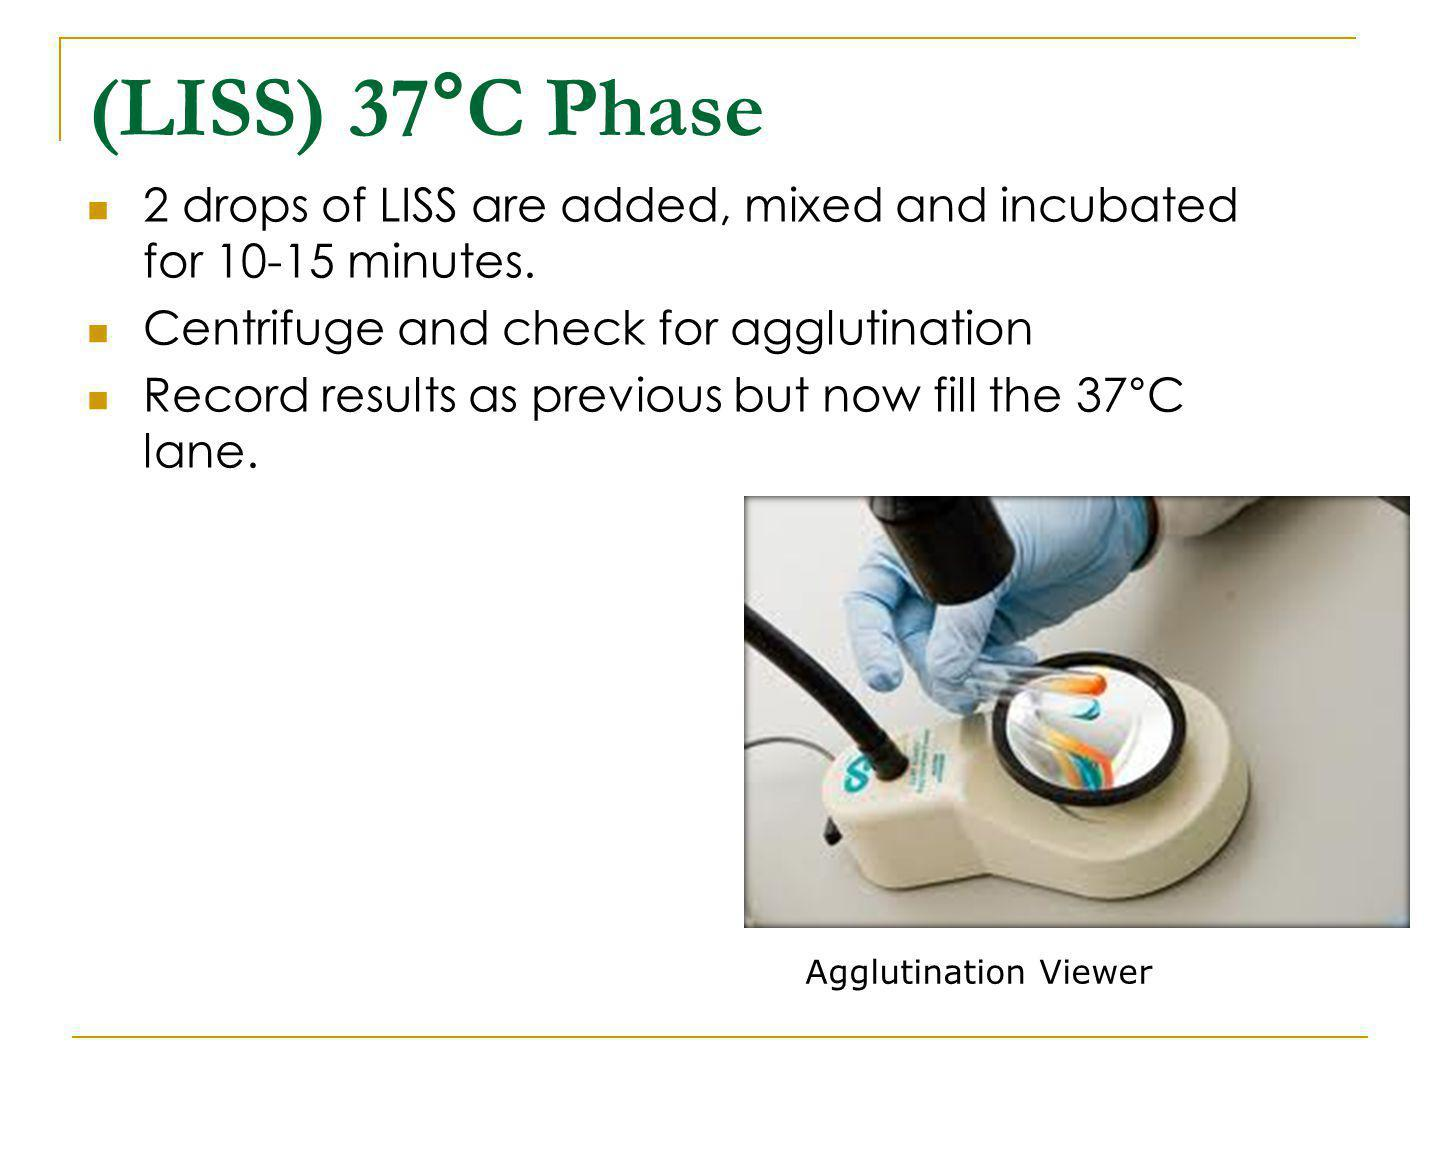 (LISS) 37°C Phase 2 drops of LISS are added, mixed and incubated for 10-15 minutes. Centrifuge and check for agglutination Record results as previous